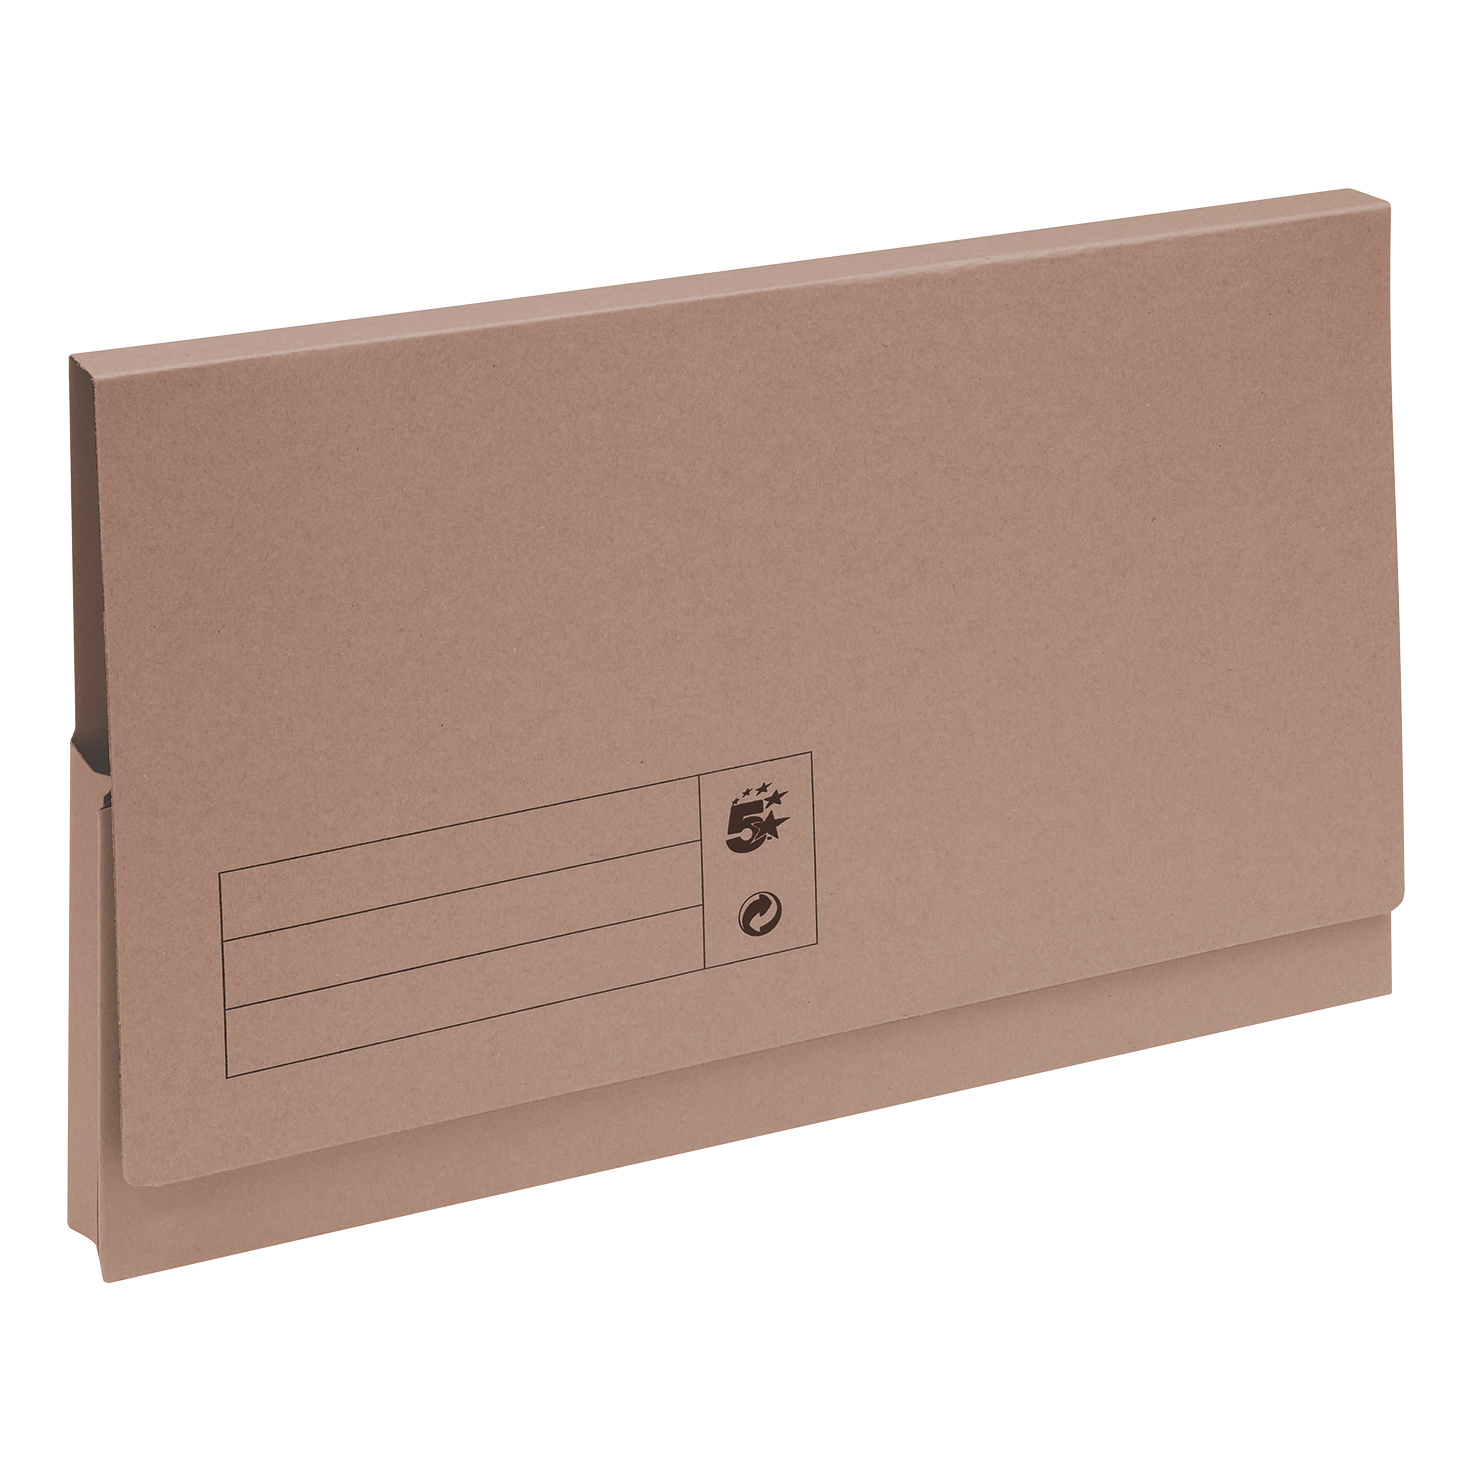 5 Star Office Document Wallet Full Flap 285gsm Recycled Capacity 32mm Foolscap Buff [Pack 50]